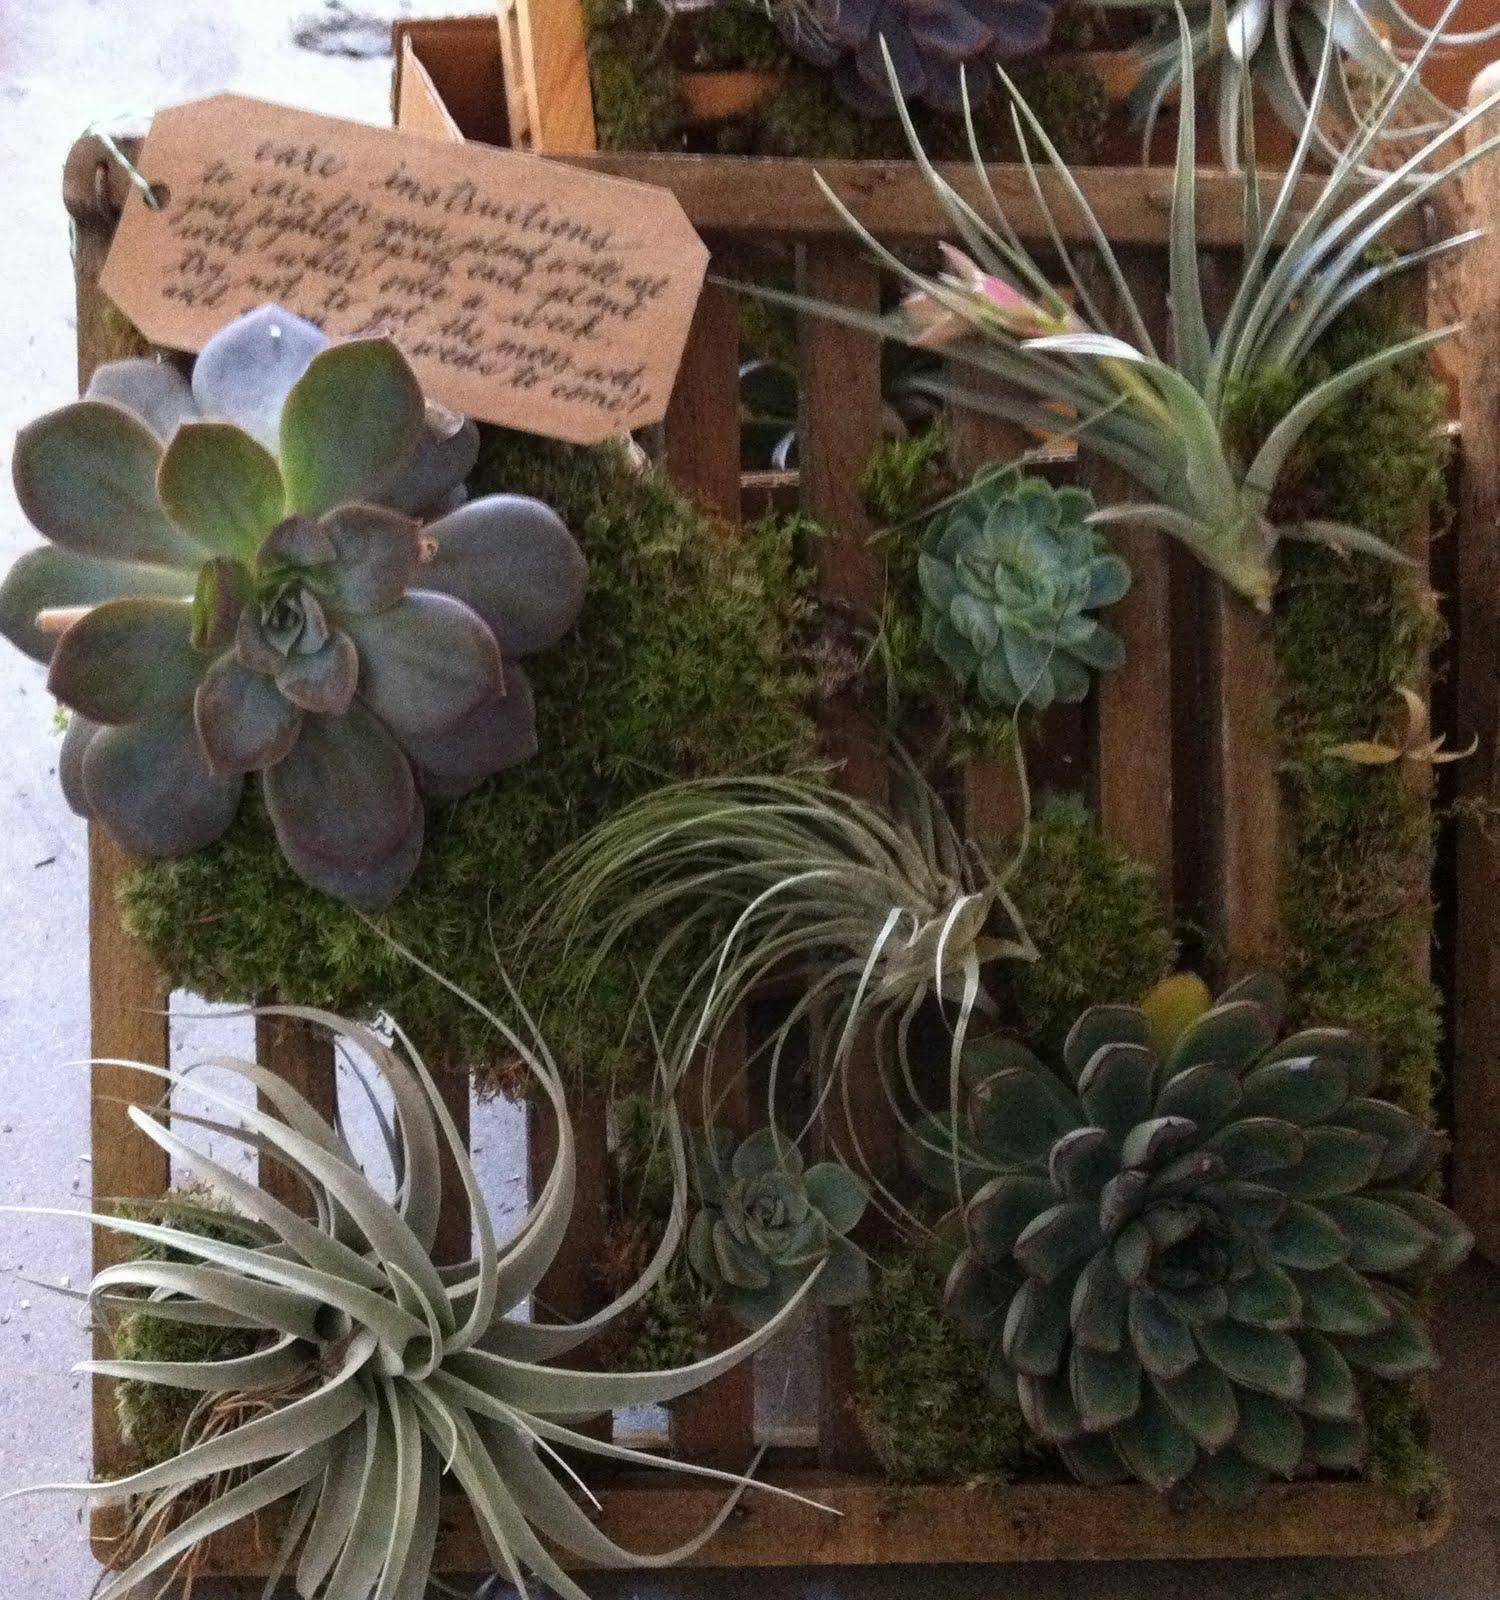 Poppies & Posies: Succulent & Air Plant Wall Art Regarding Air Plant Wall Art (Image 18 of 20)